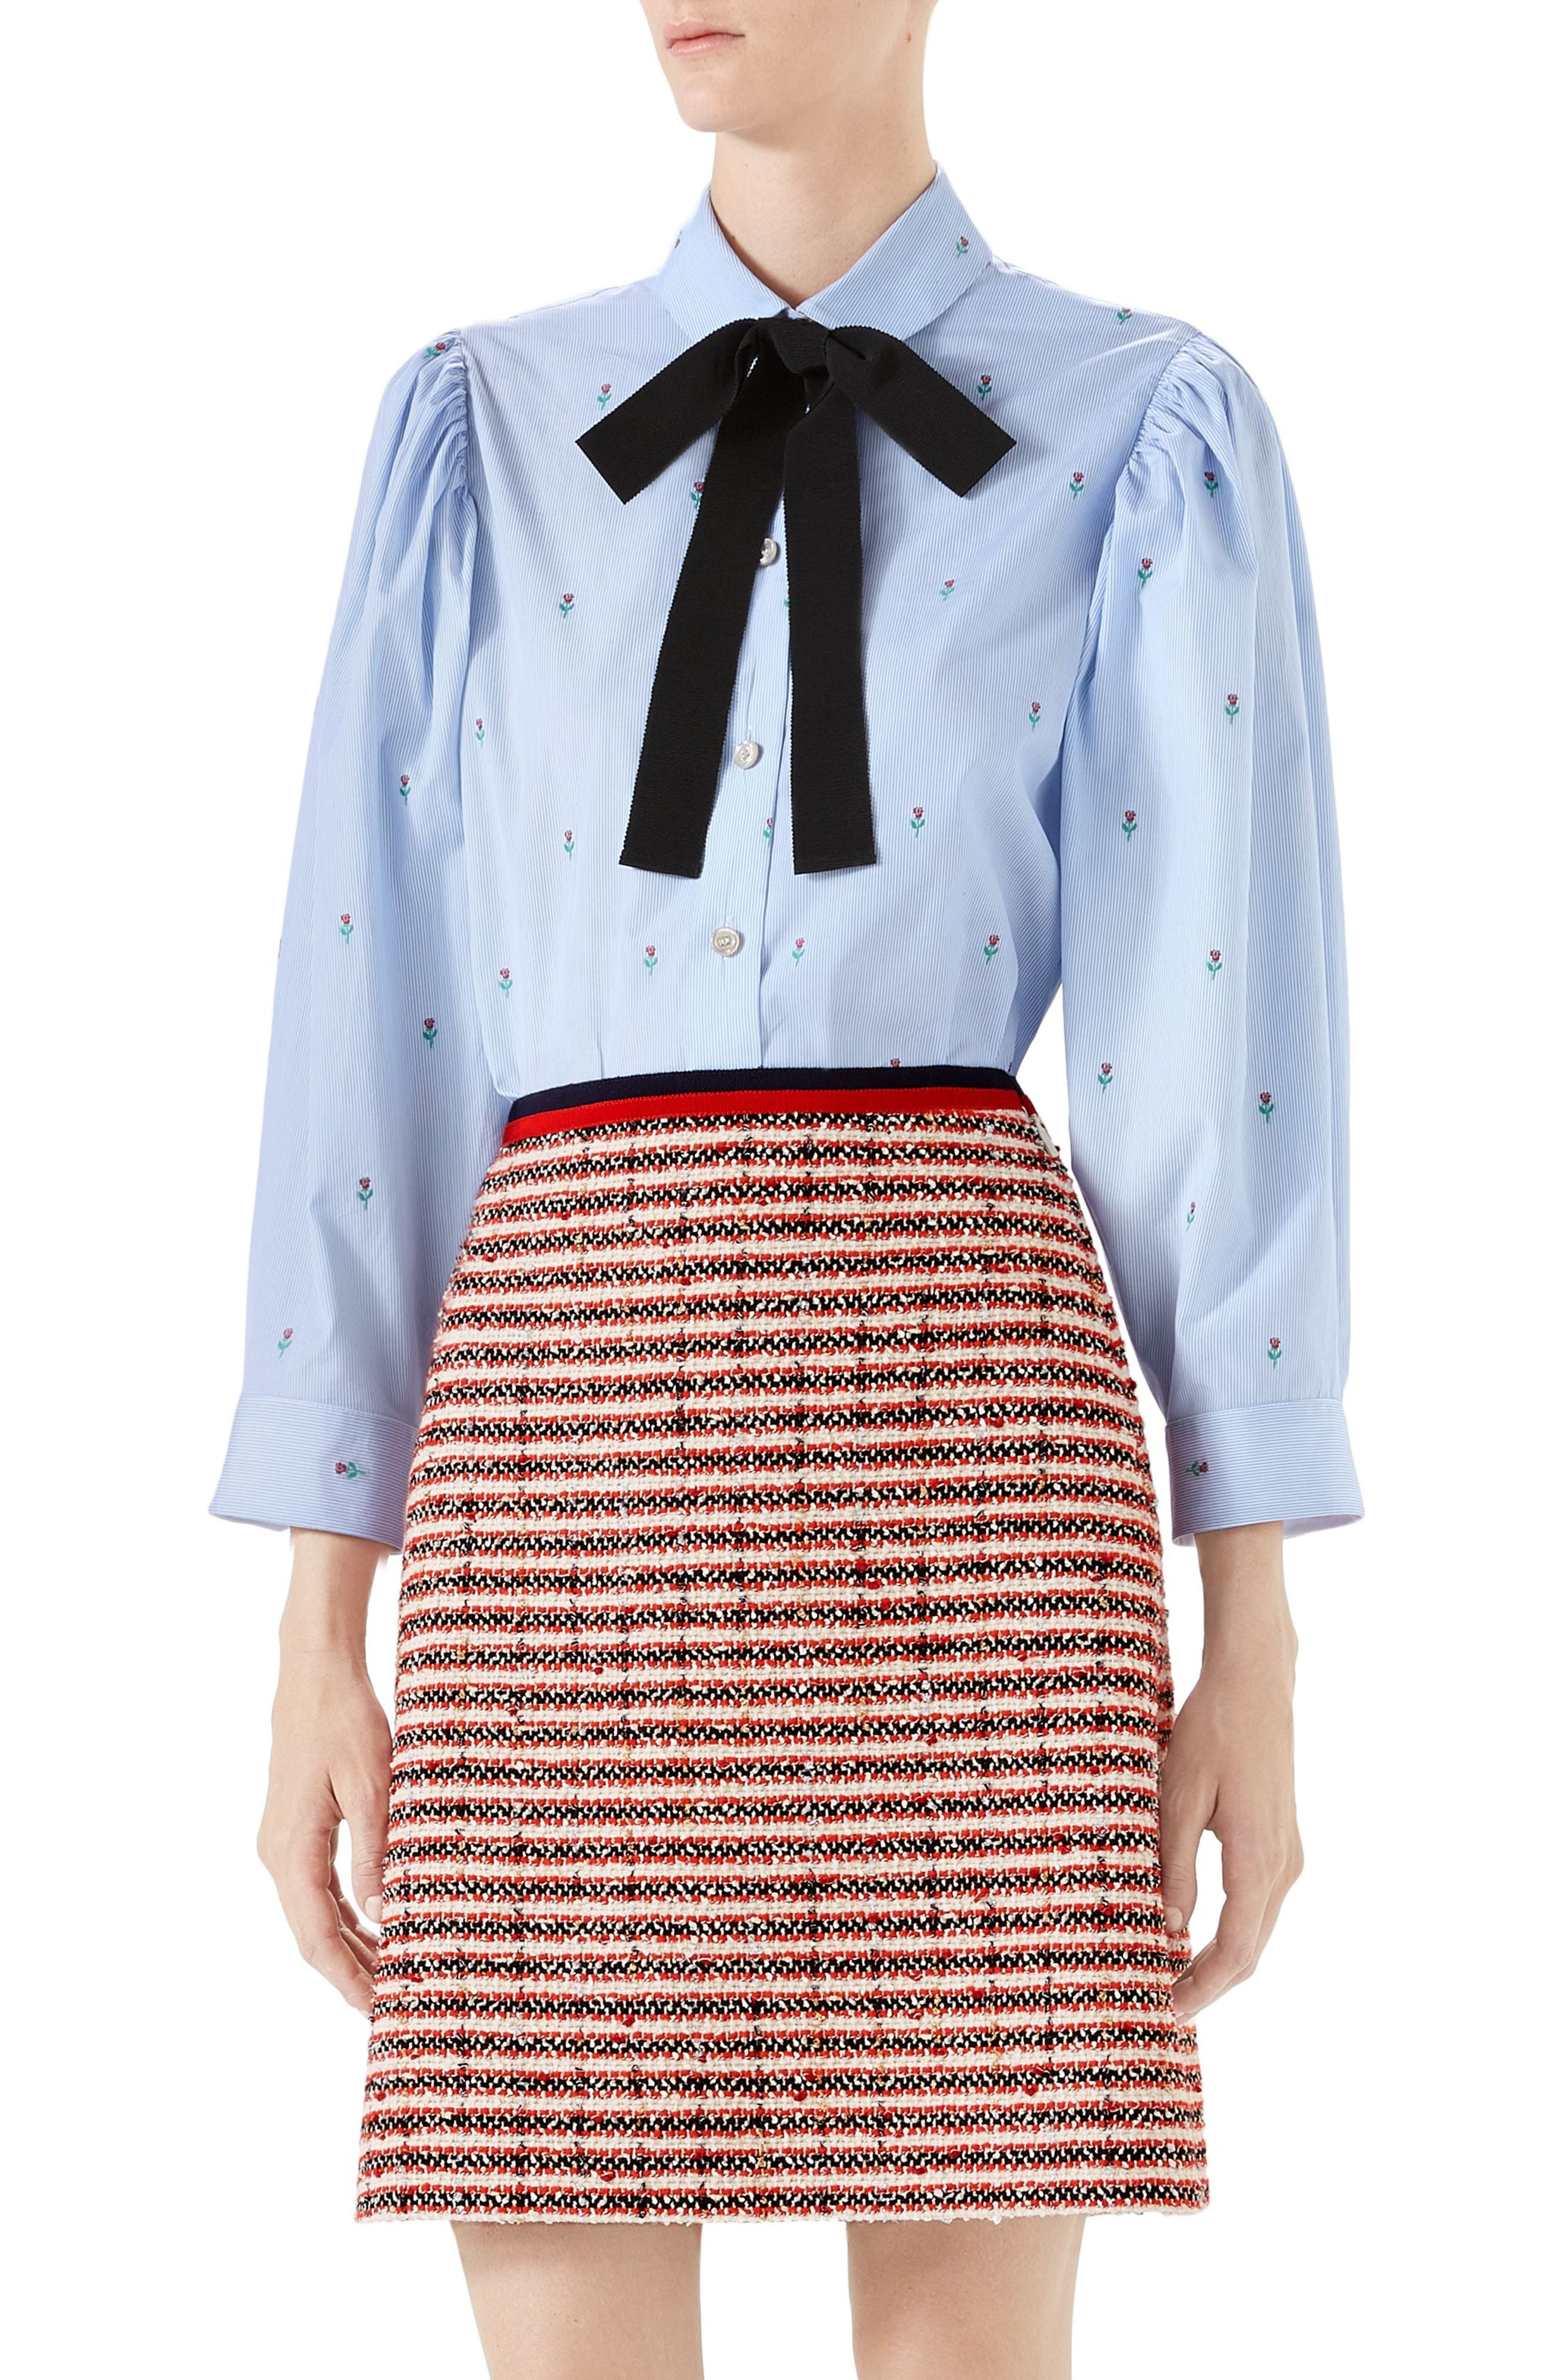 GUCCI RIBBON BOW FLORAL EMBROIDERED OXFORD SHIRT, BLUE/BLACK